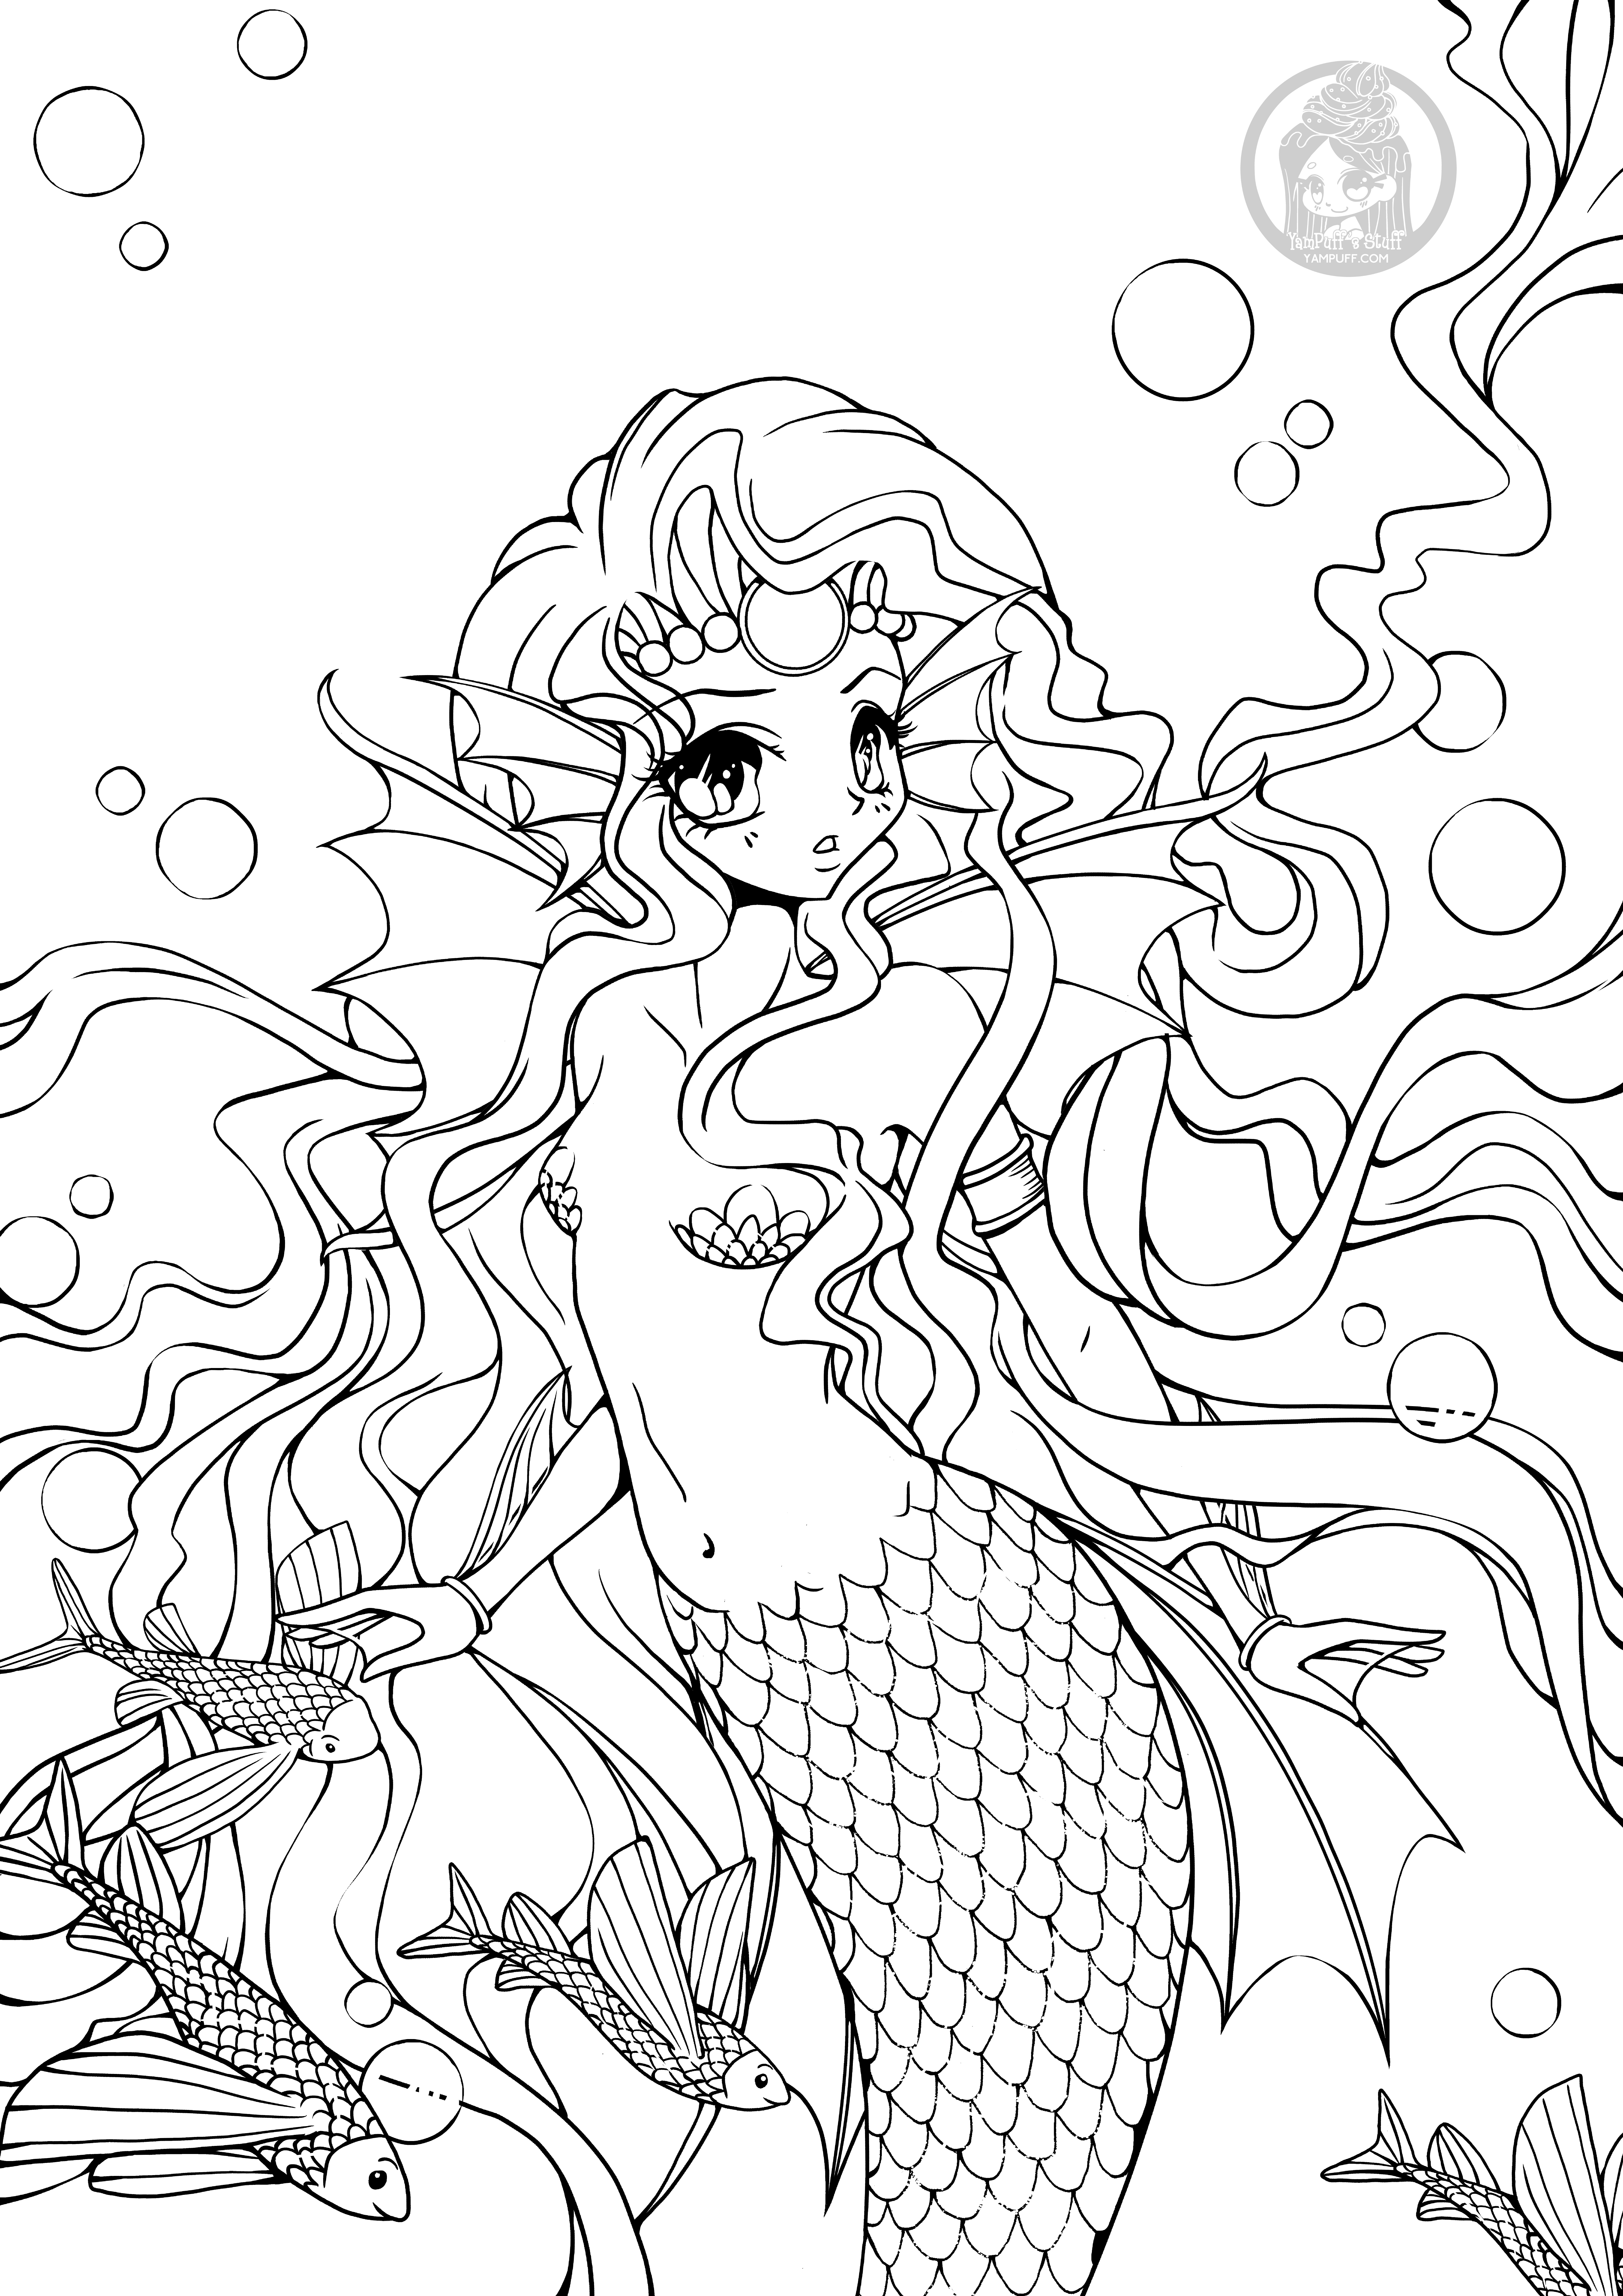 Other YamPuff Coloring Pages